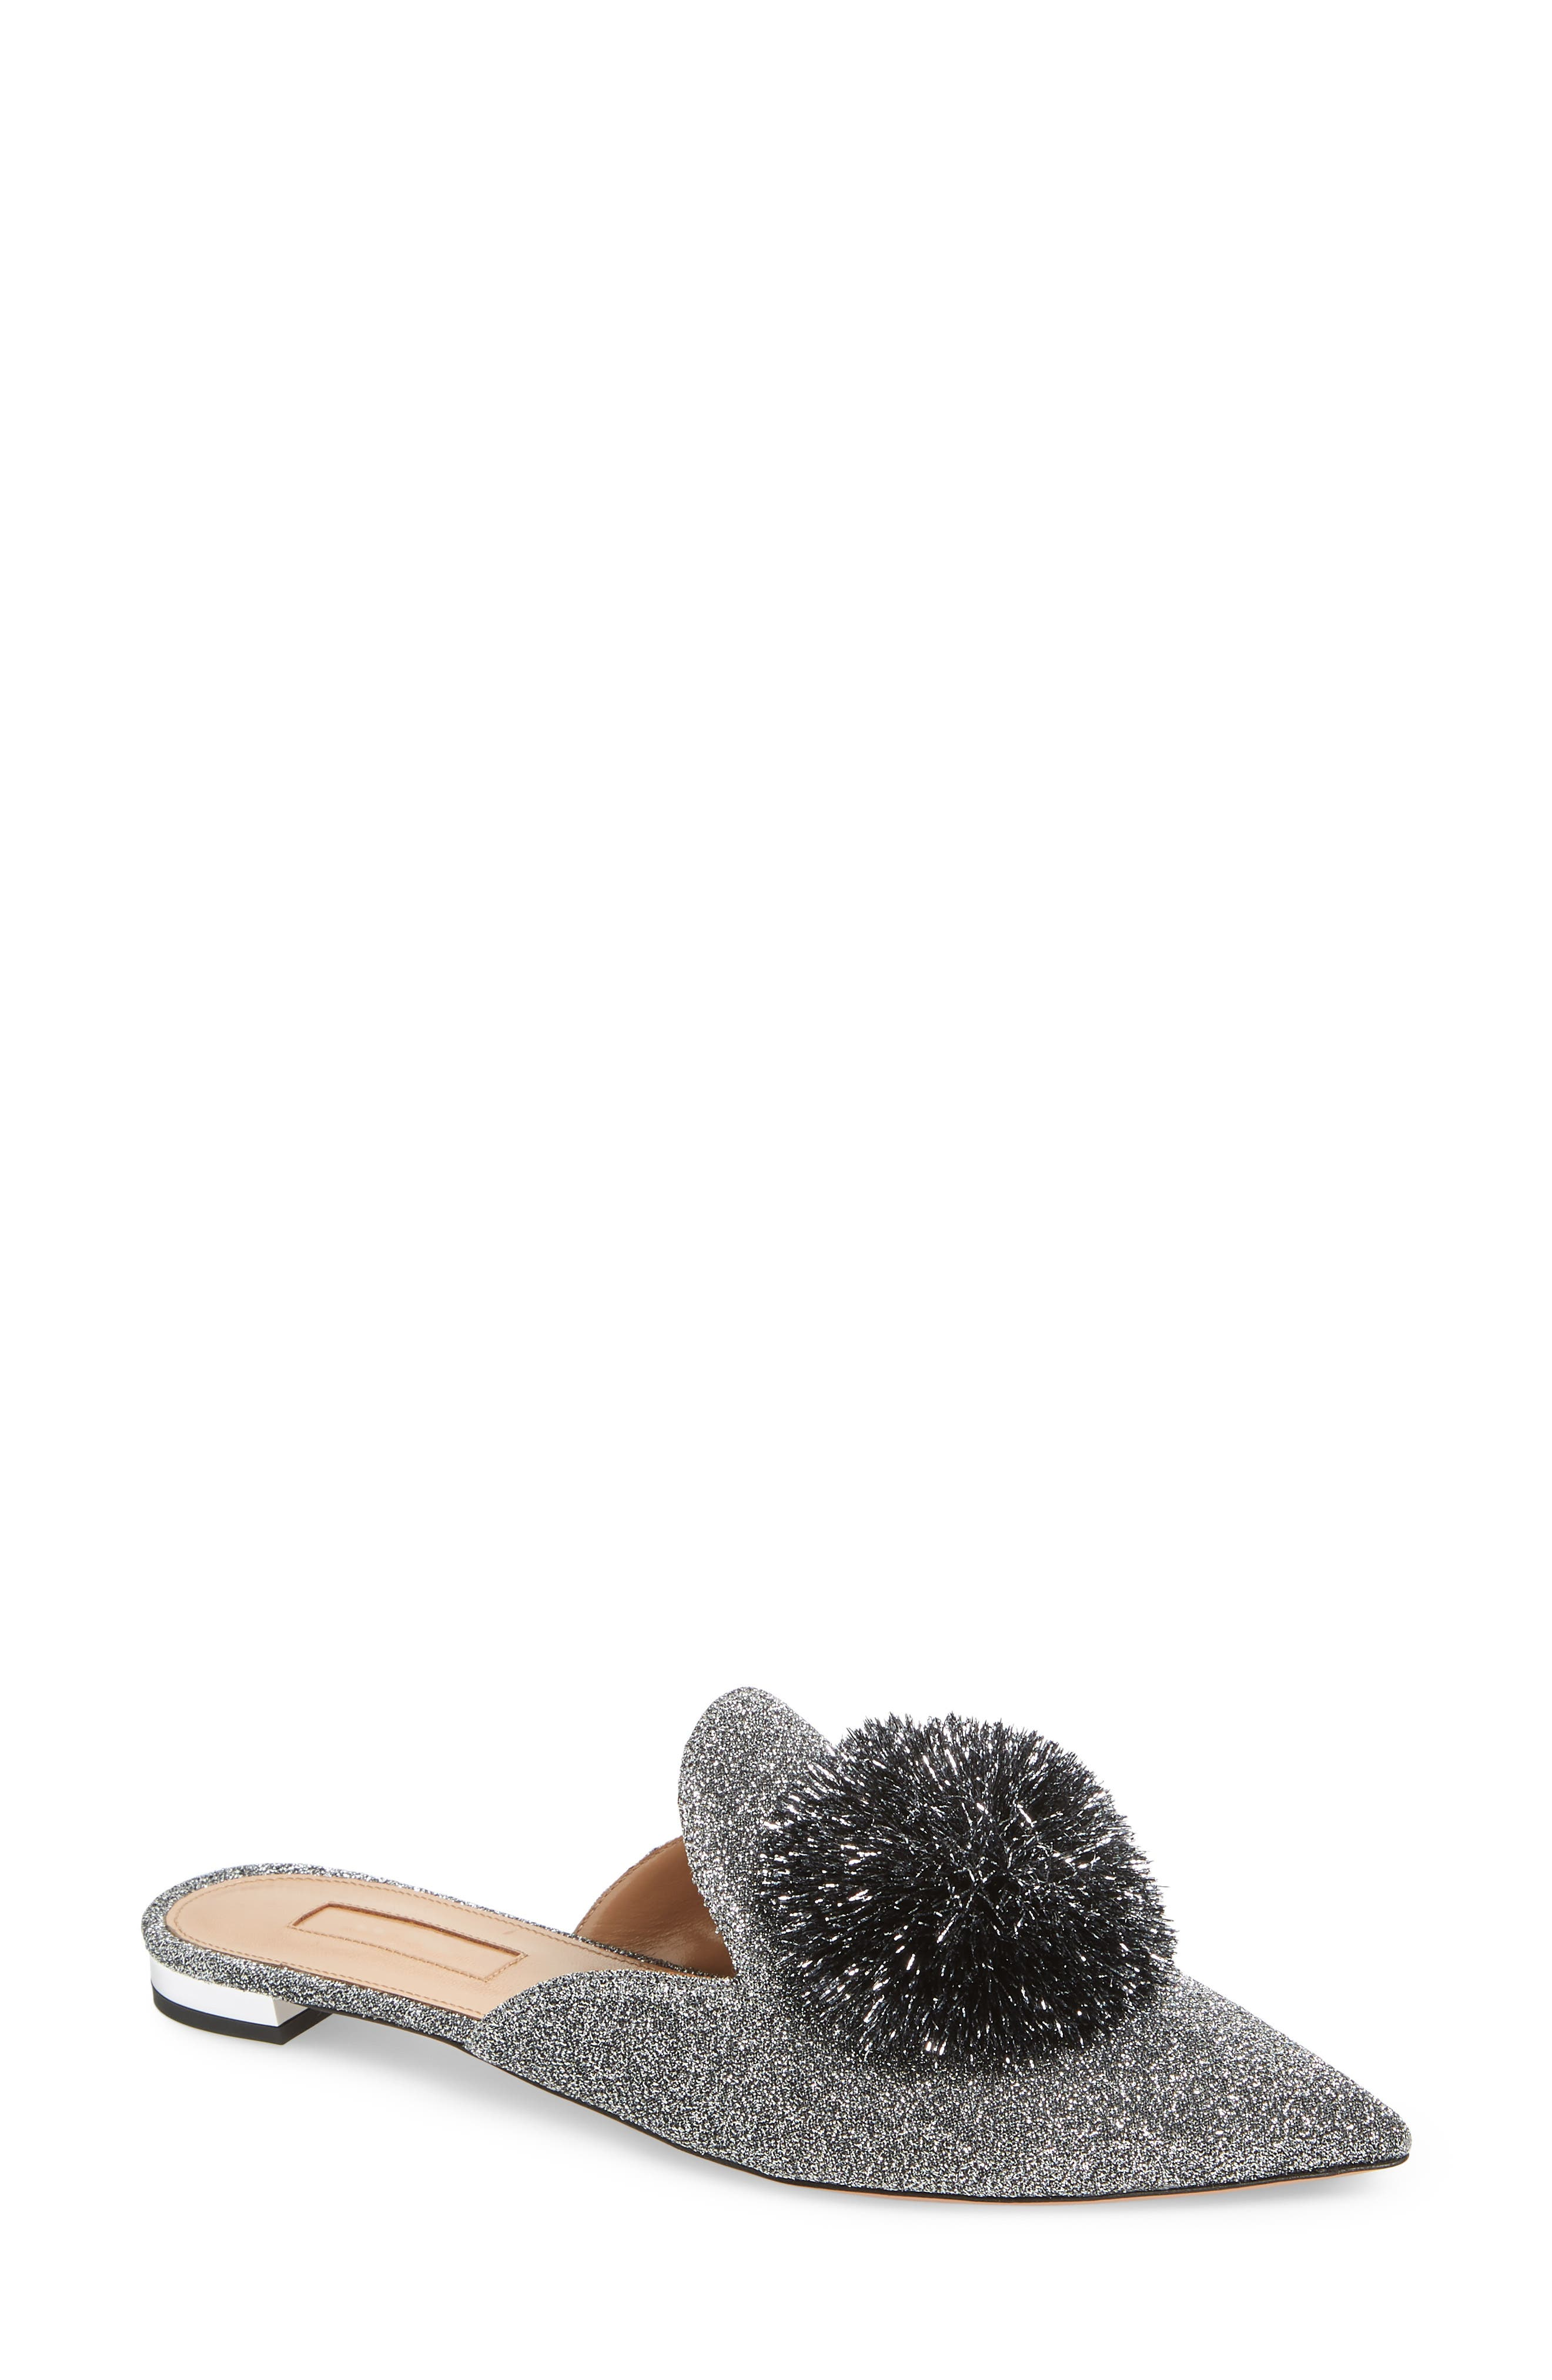 Aquazurra Powder Puff Metallic Mule (Women)